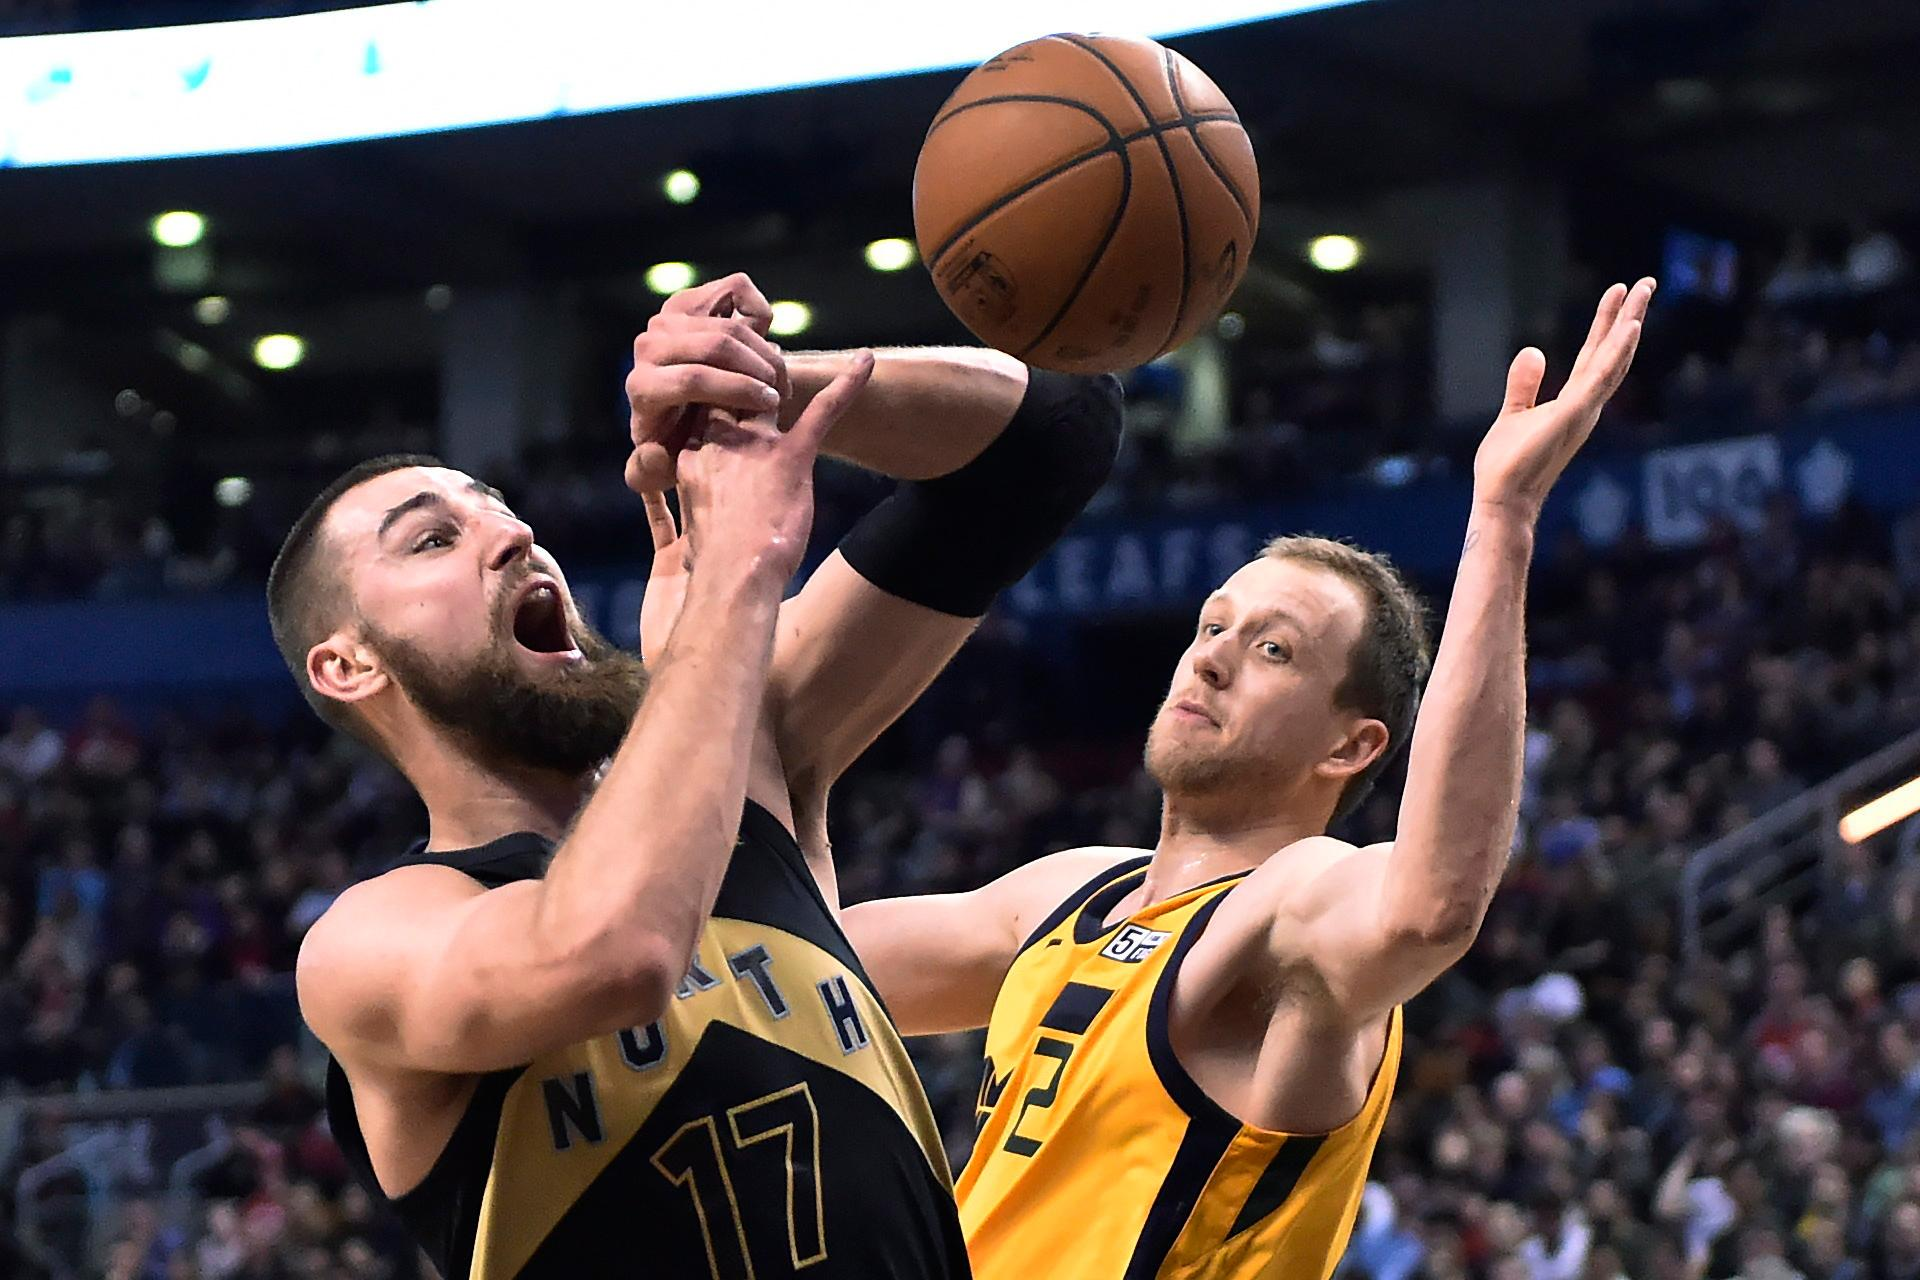 Toronto Raptors center Jonas Valanciunas (17) is fouled by Utah Jazz forward Joe Ingles (2) during the second half of an NBA basketball game Friday, Jan. 26, 2018, in Toronto. (Frank Gunn/The Canadian Press via AP)